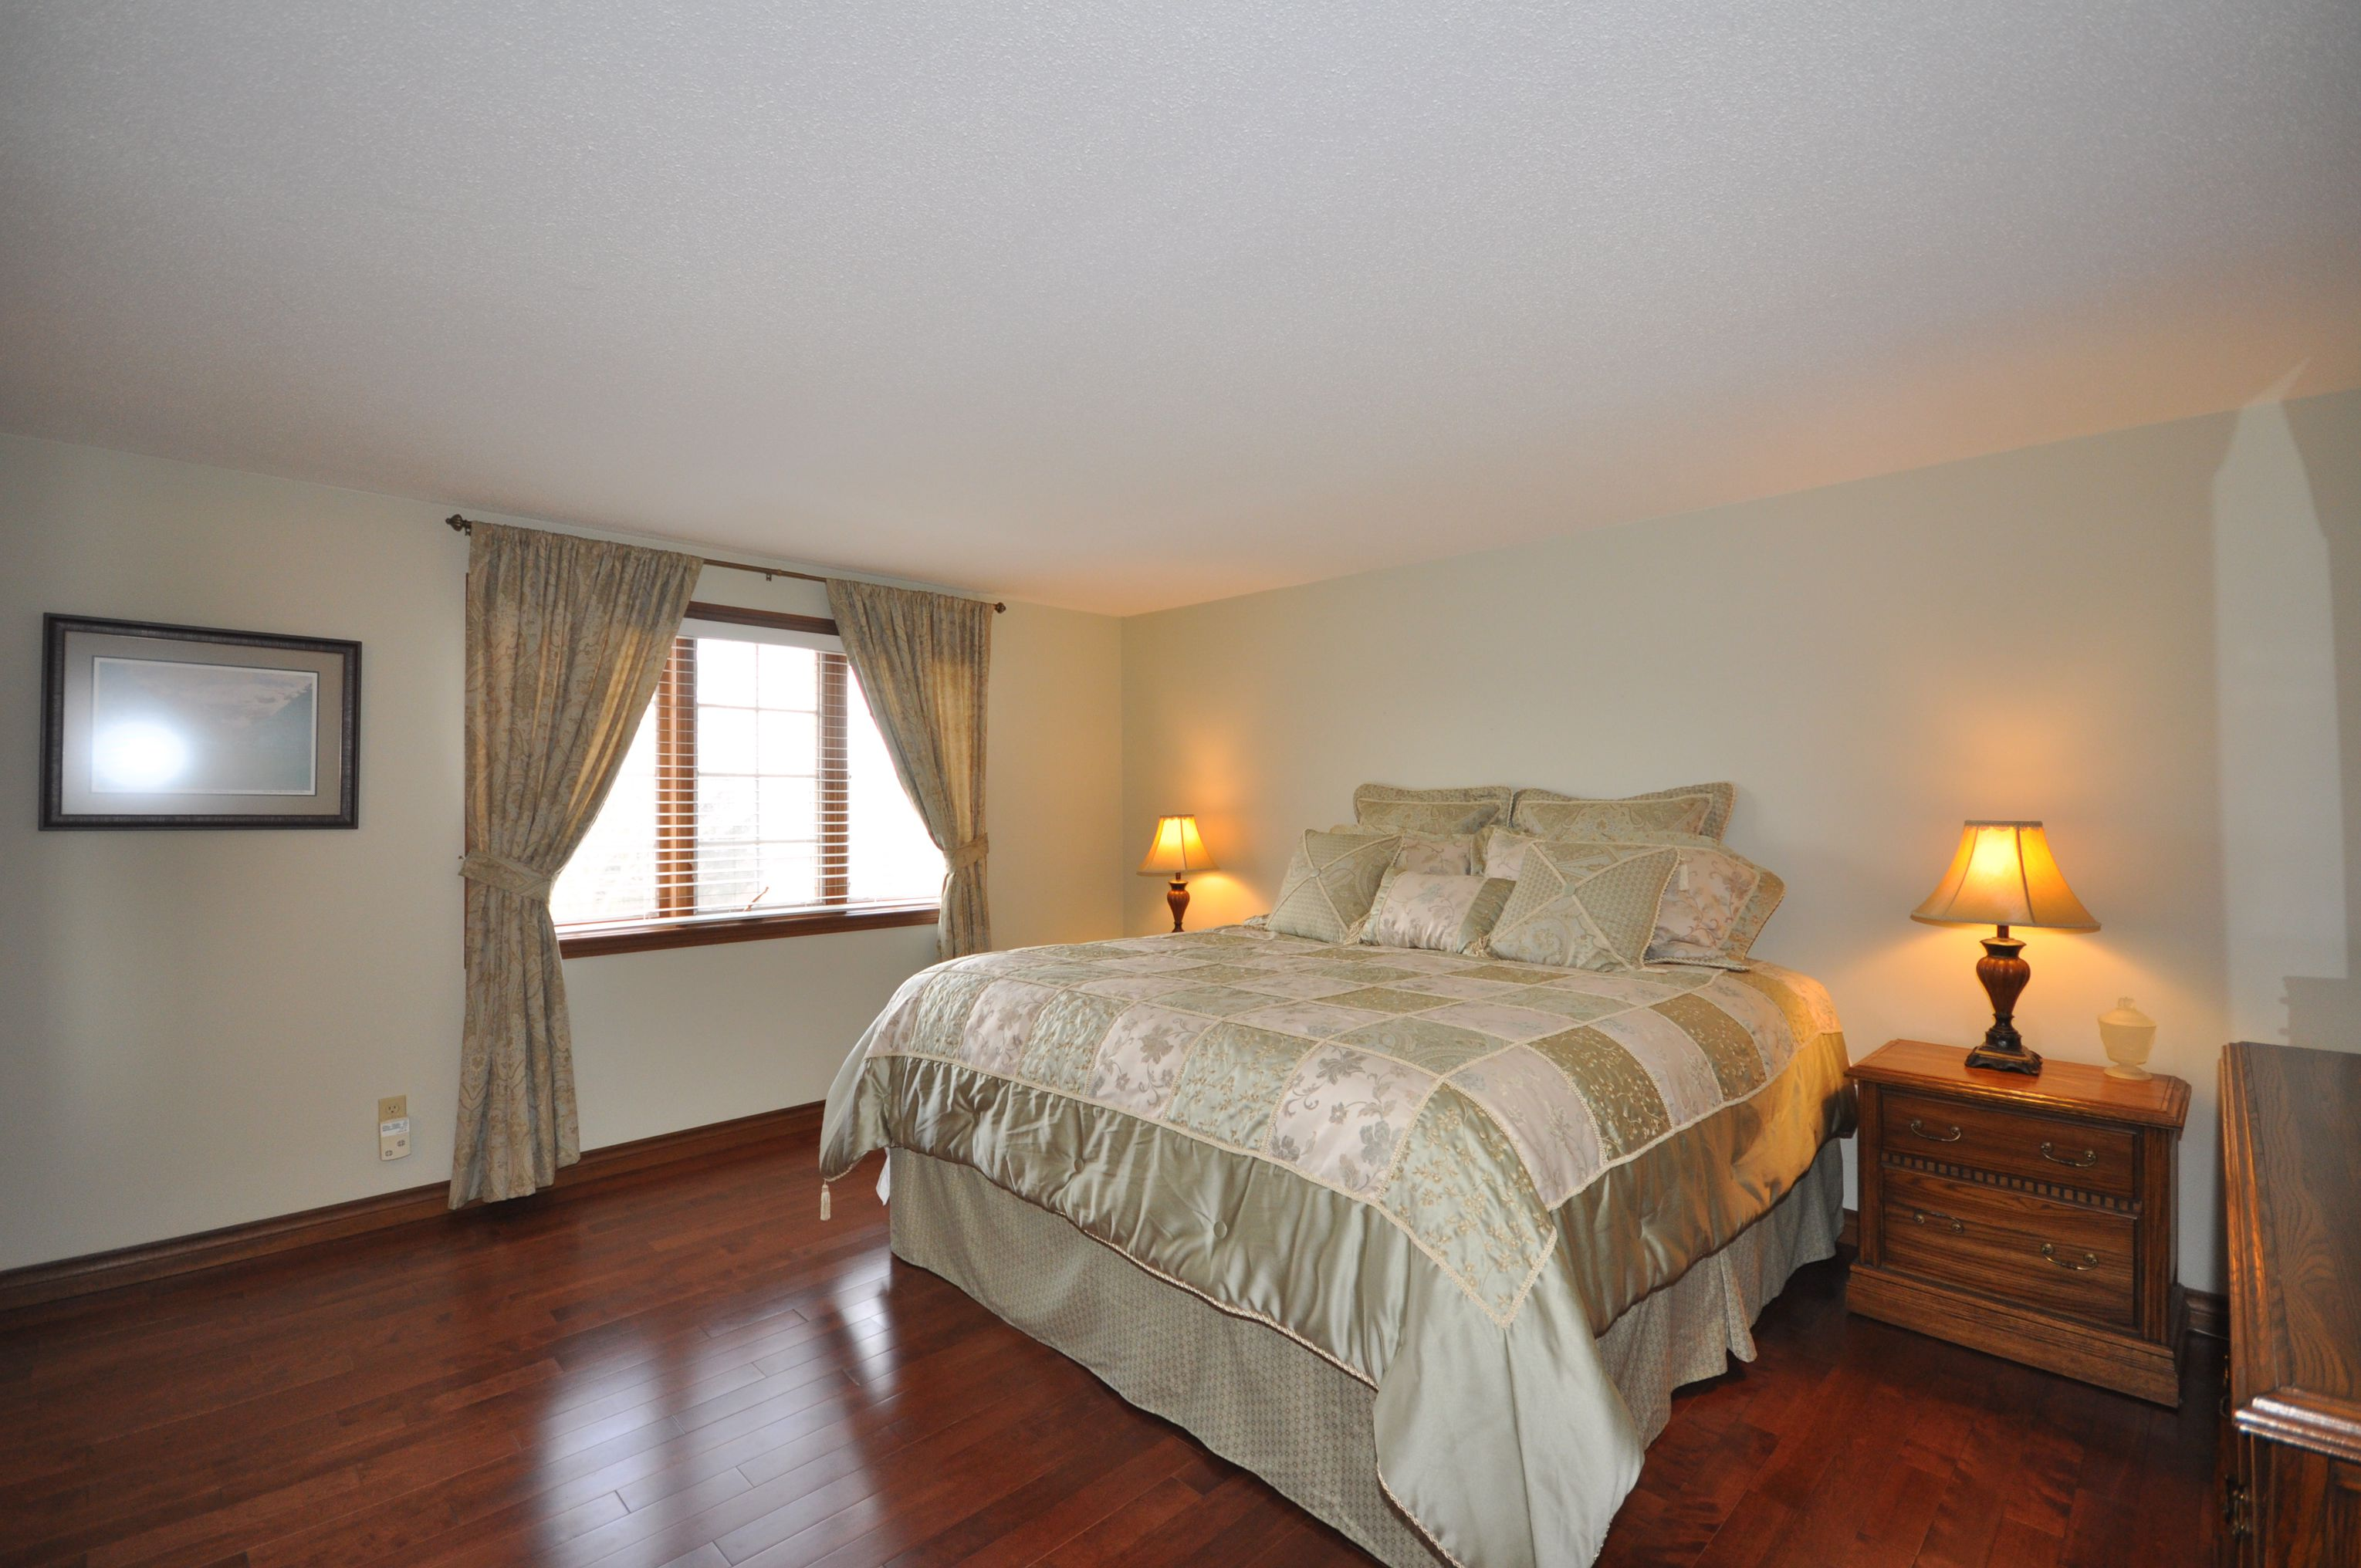 Master Bedroom with large sunny window and walk in closet